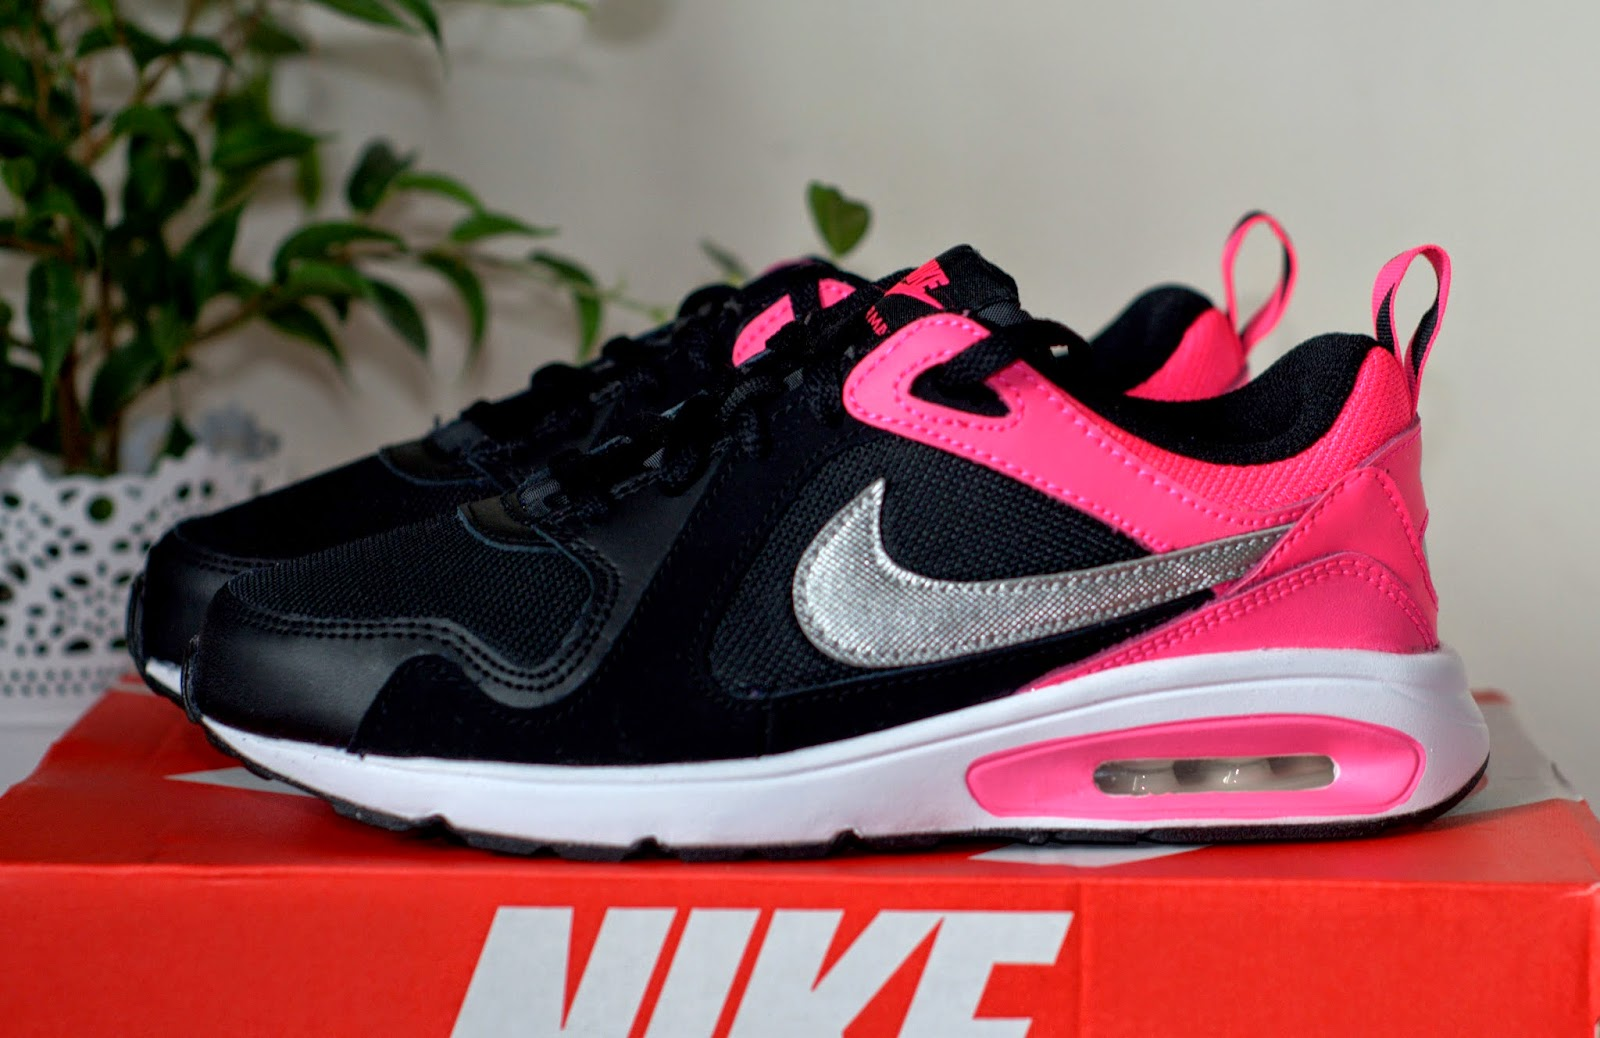 new style c617c 824be nike air max różowo czarne